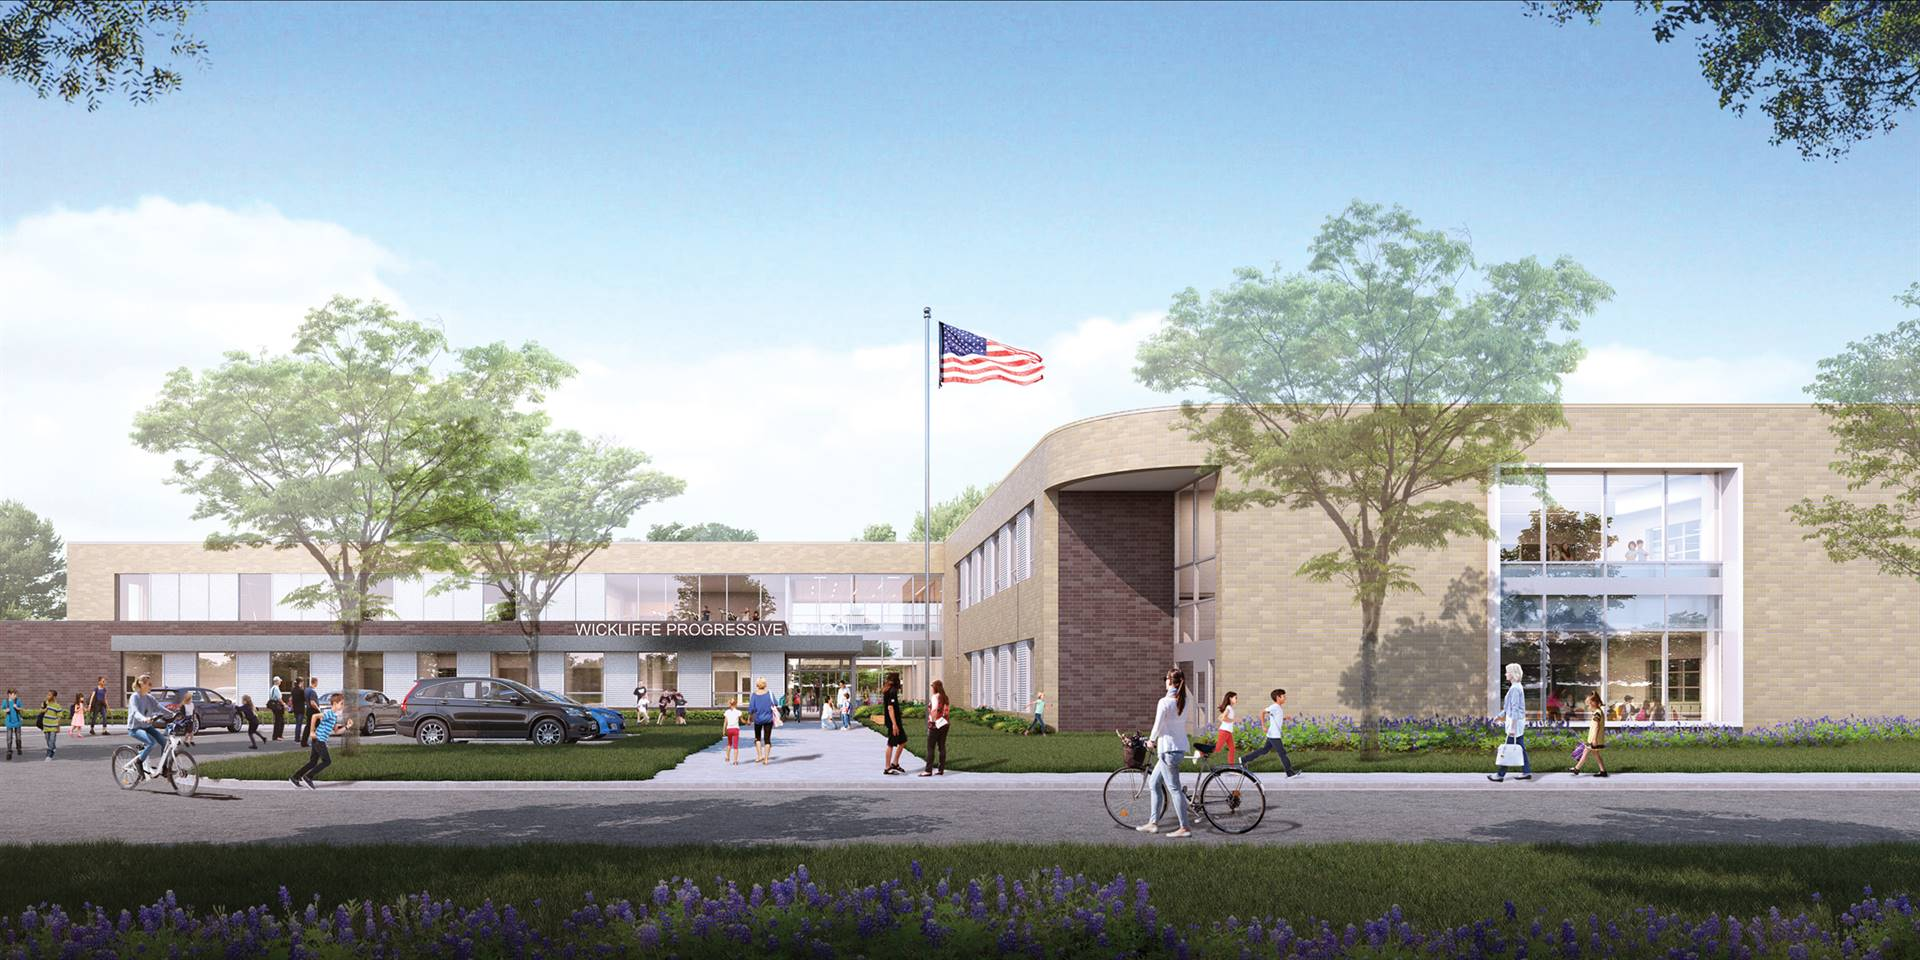 The new Wickliffe Progressive Elementary School